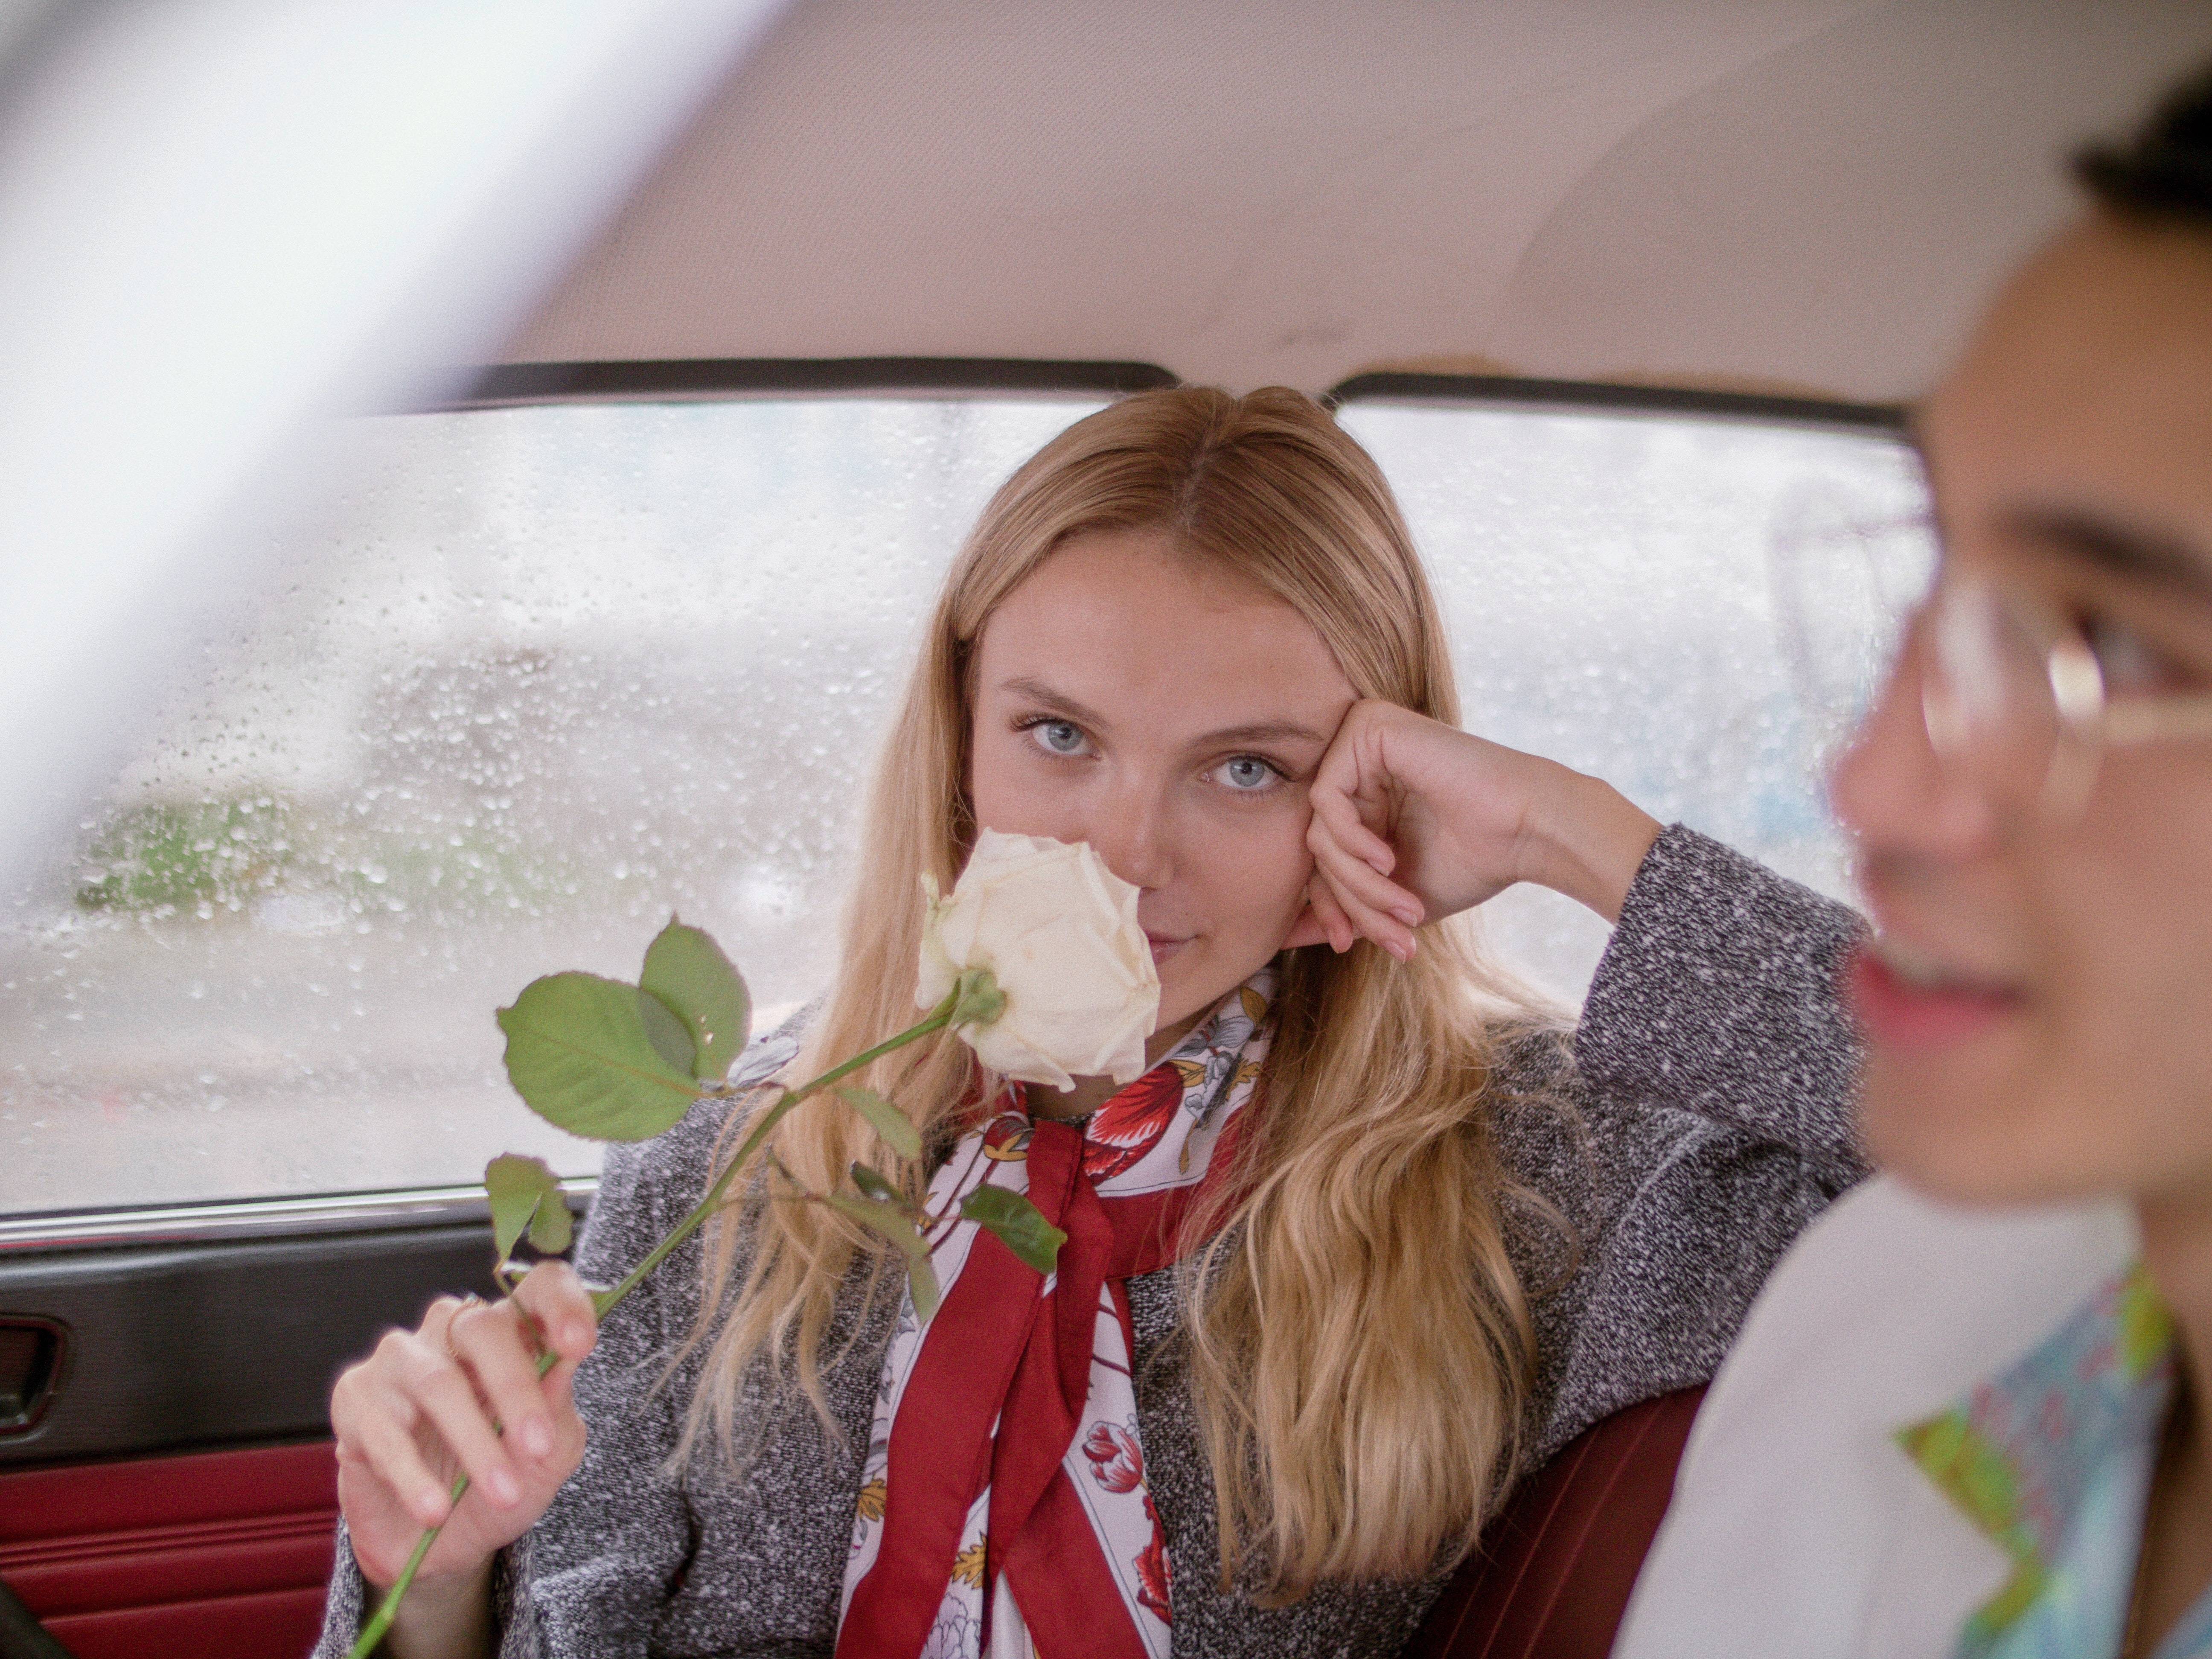 woman smelling the flower while sitting on car seat inside vehicle